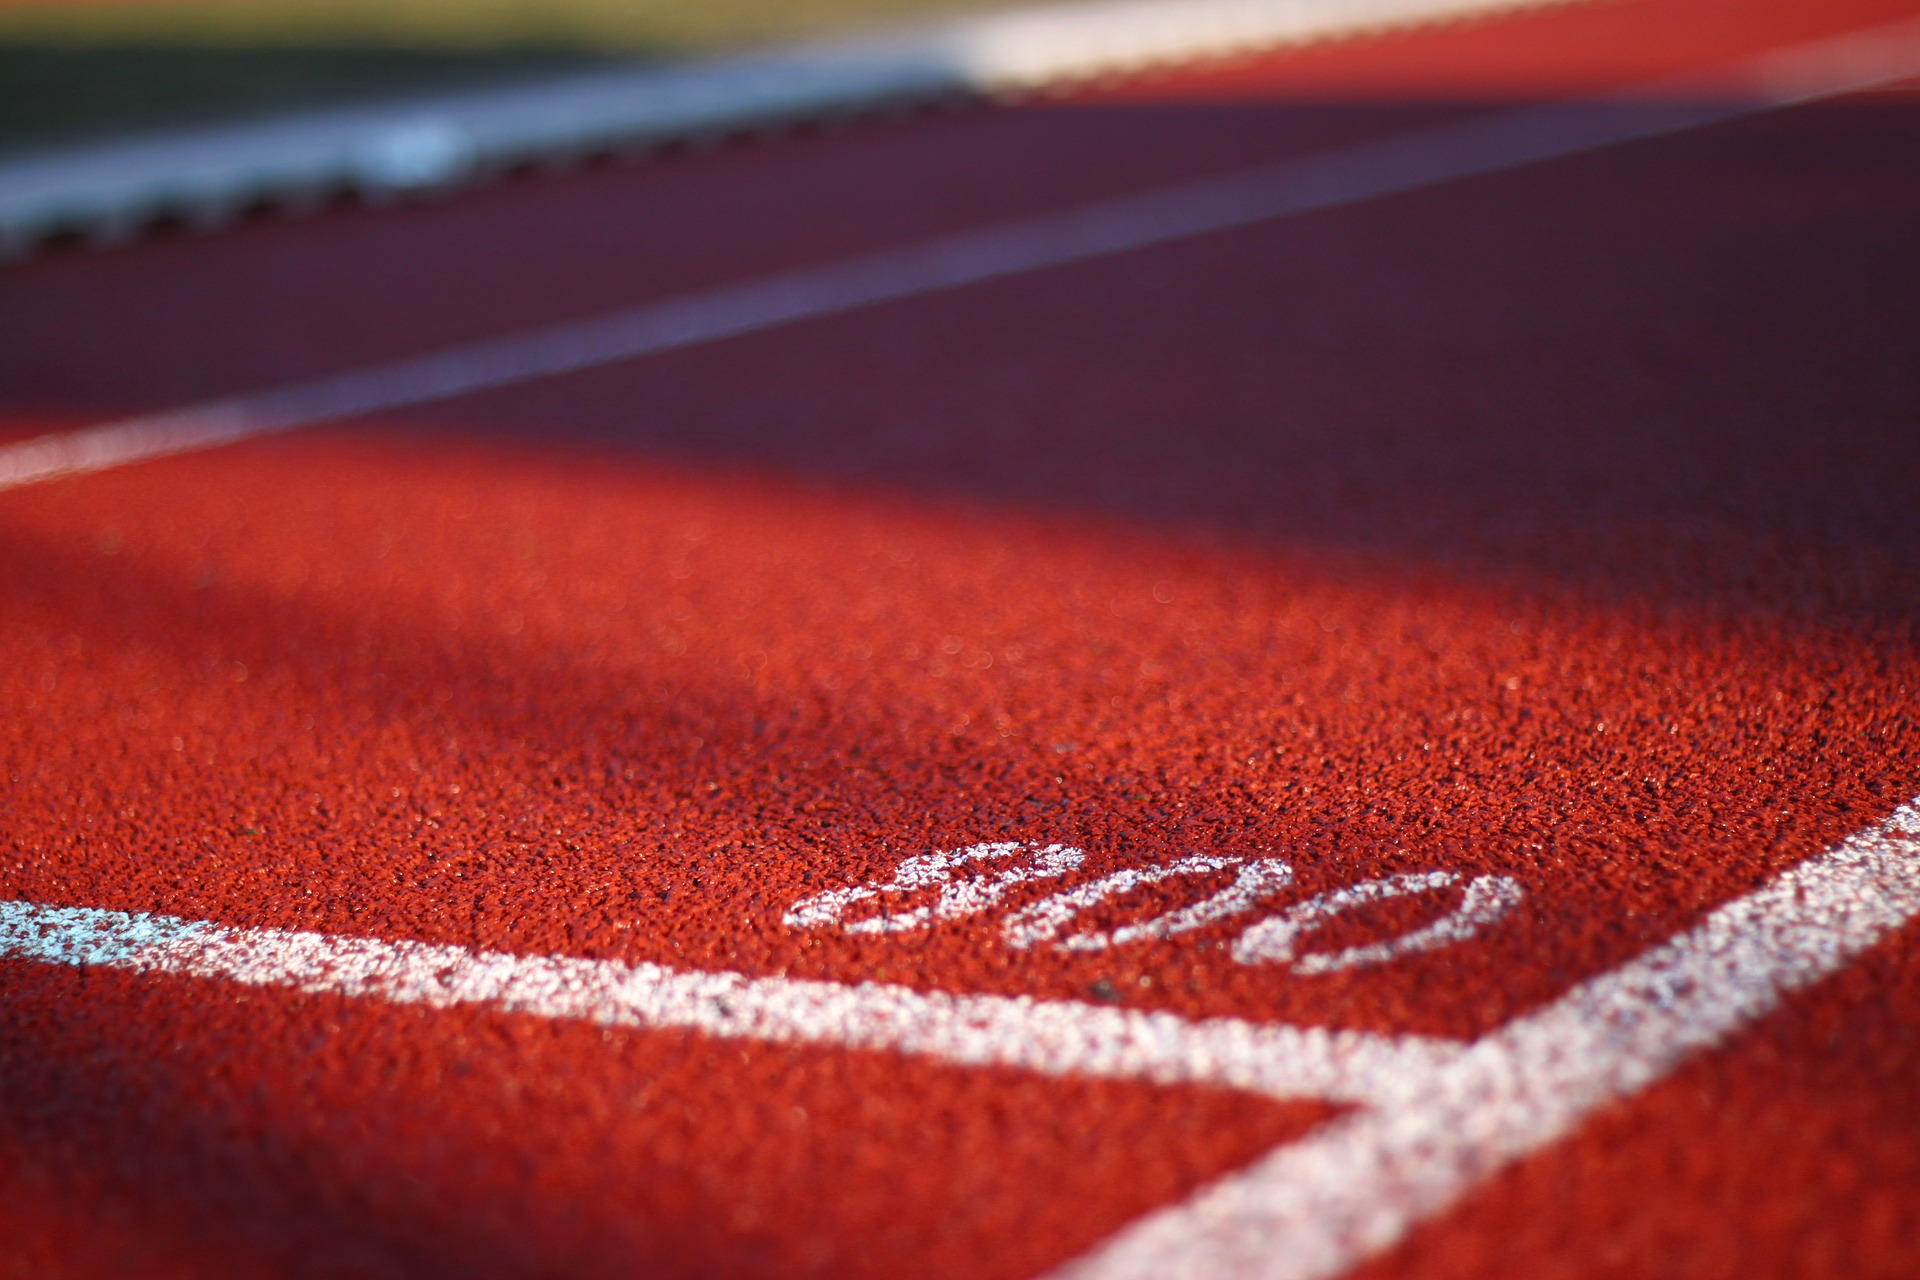 Close-up of a running track